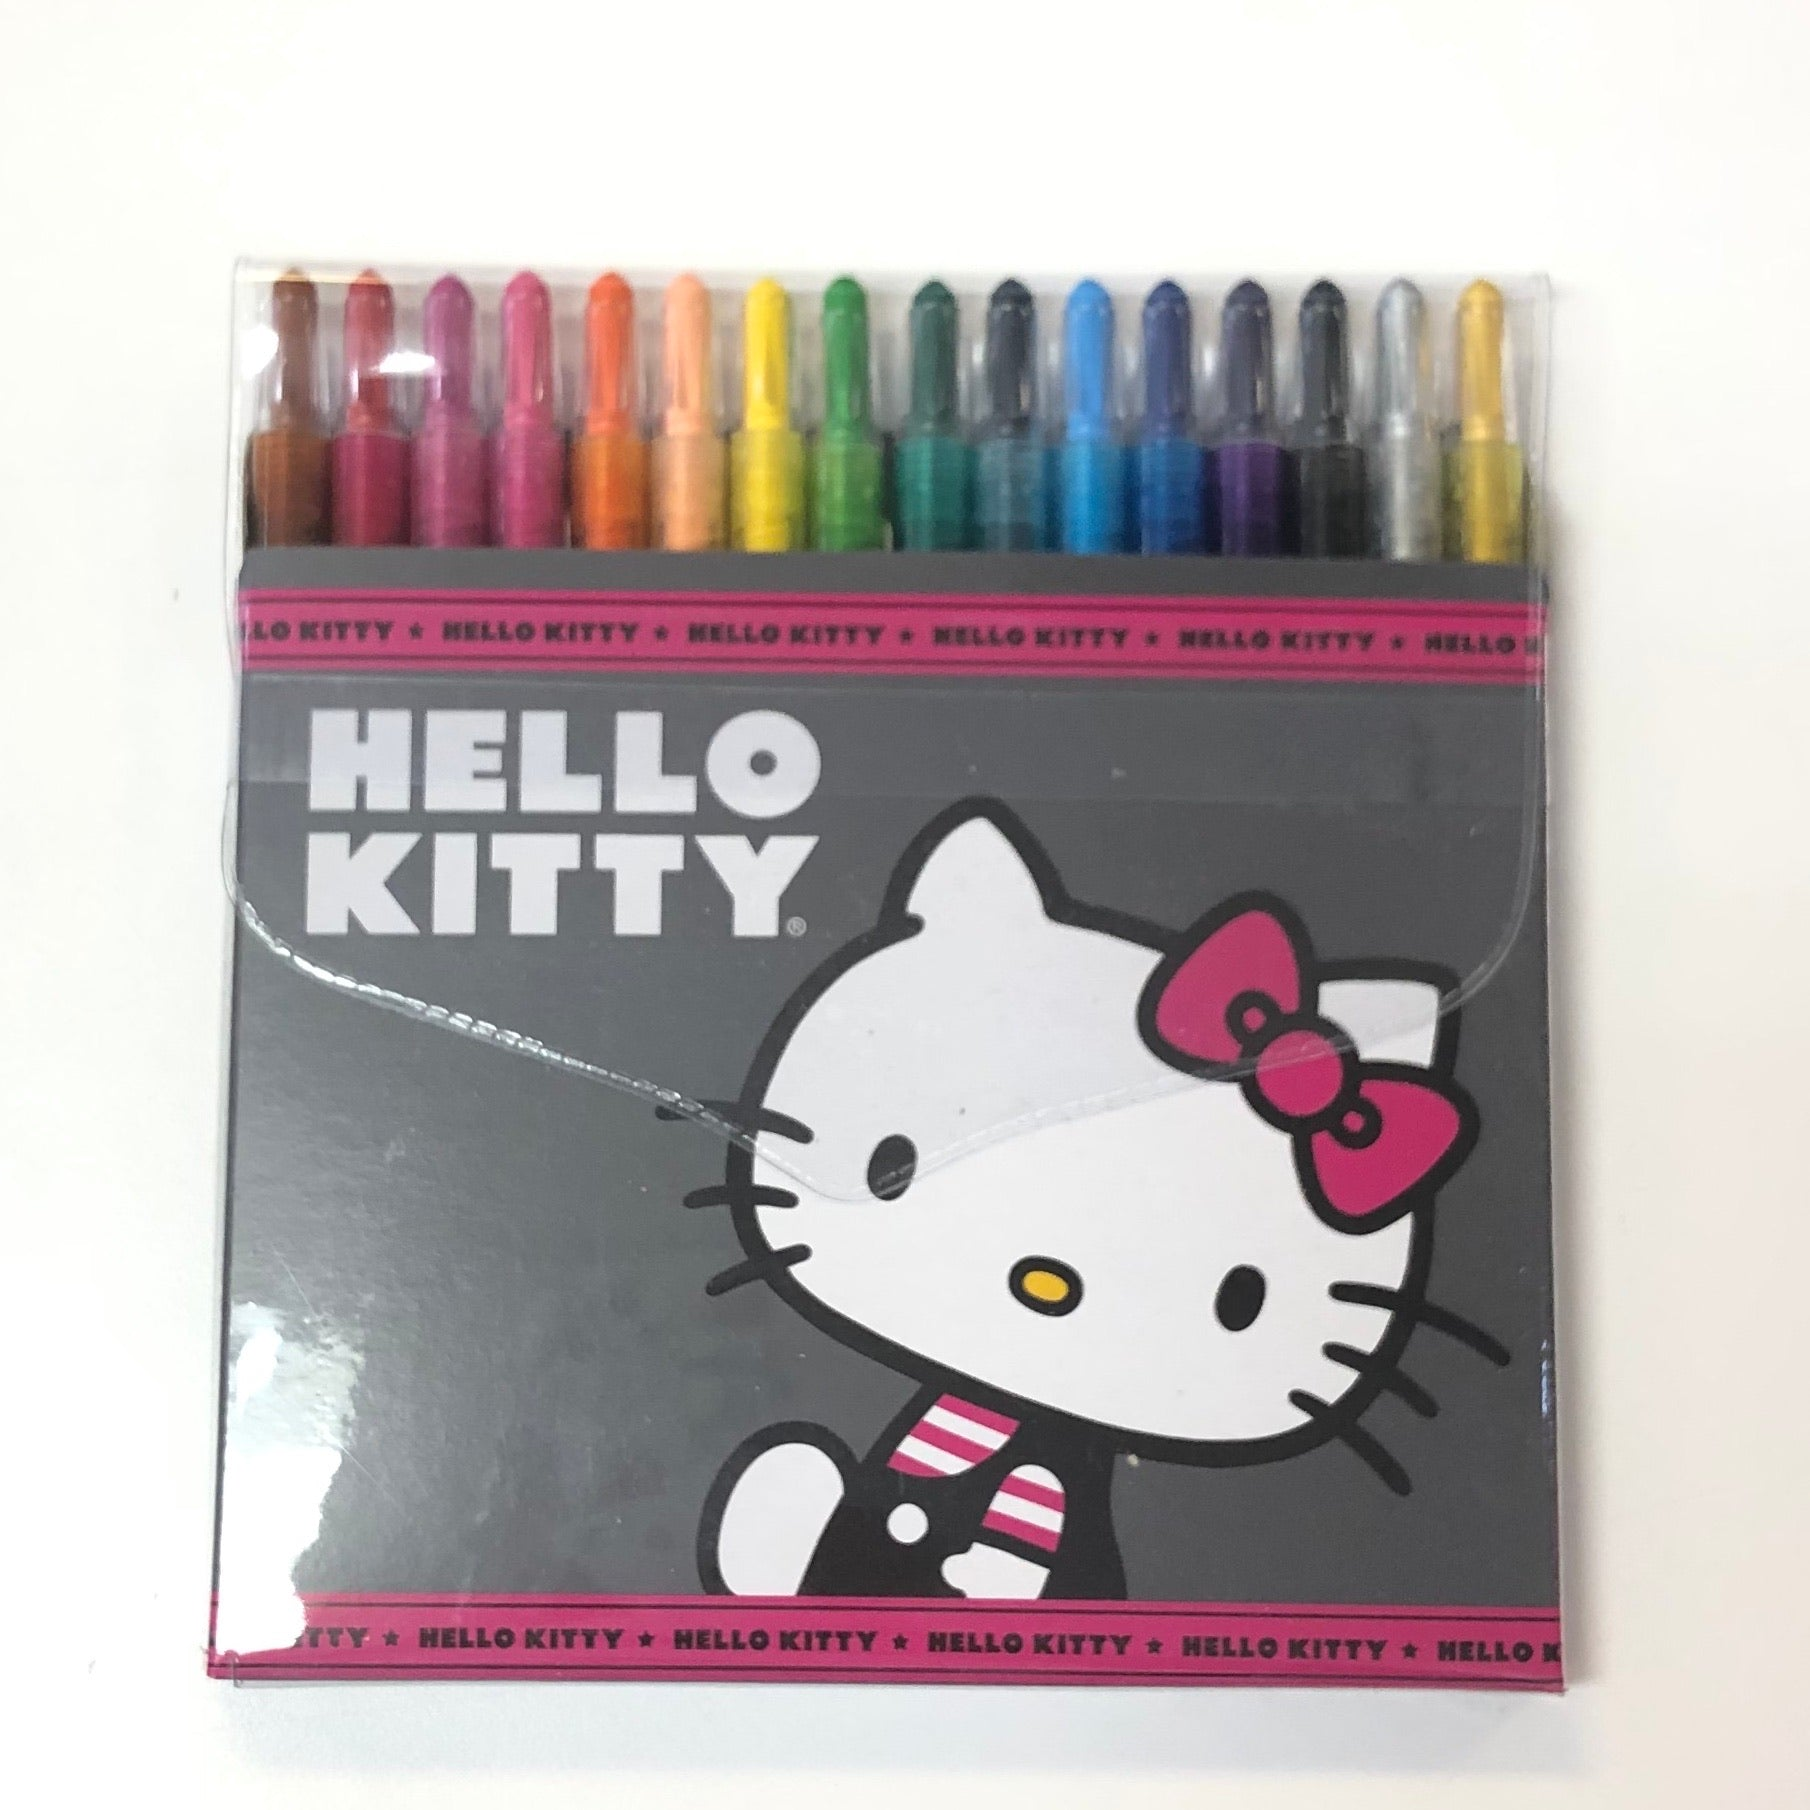 Hello Kitty Charming Pink Twist Up Crayons